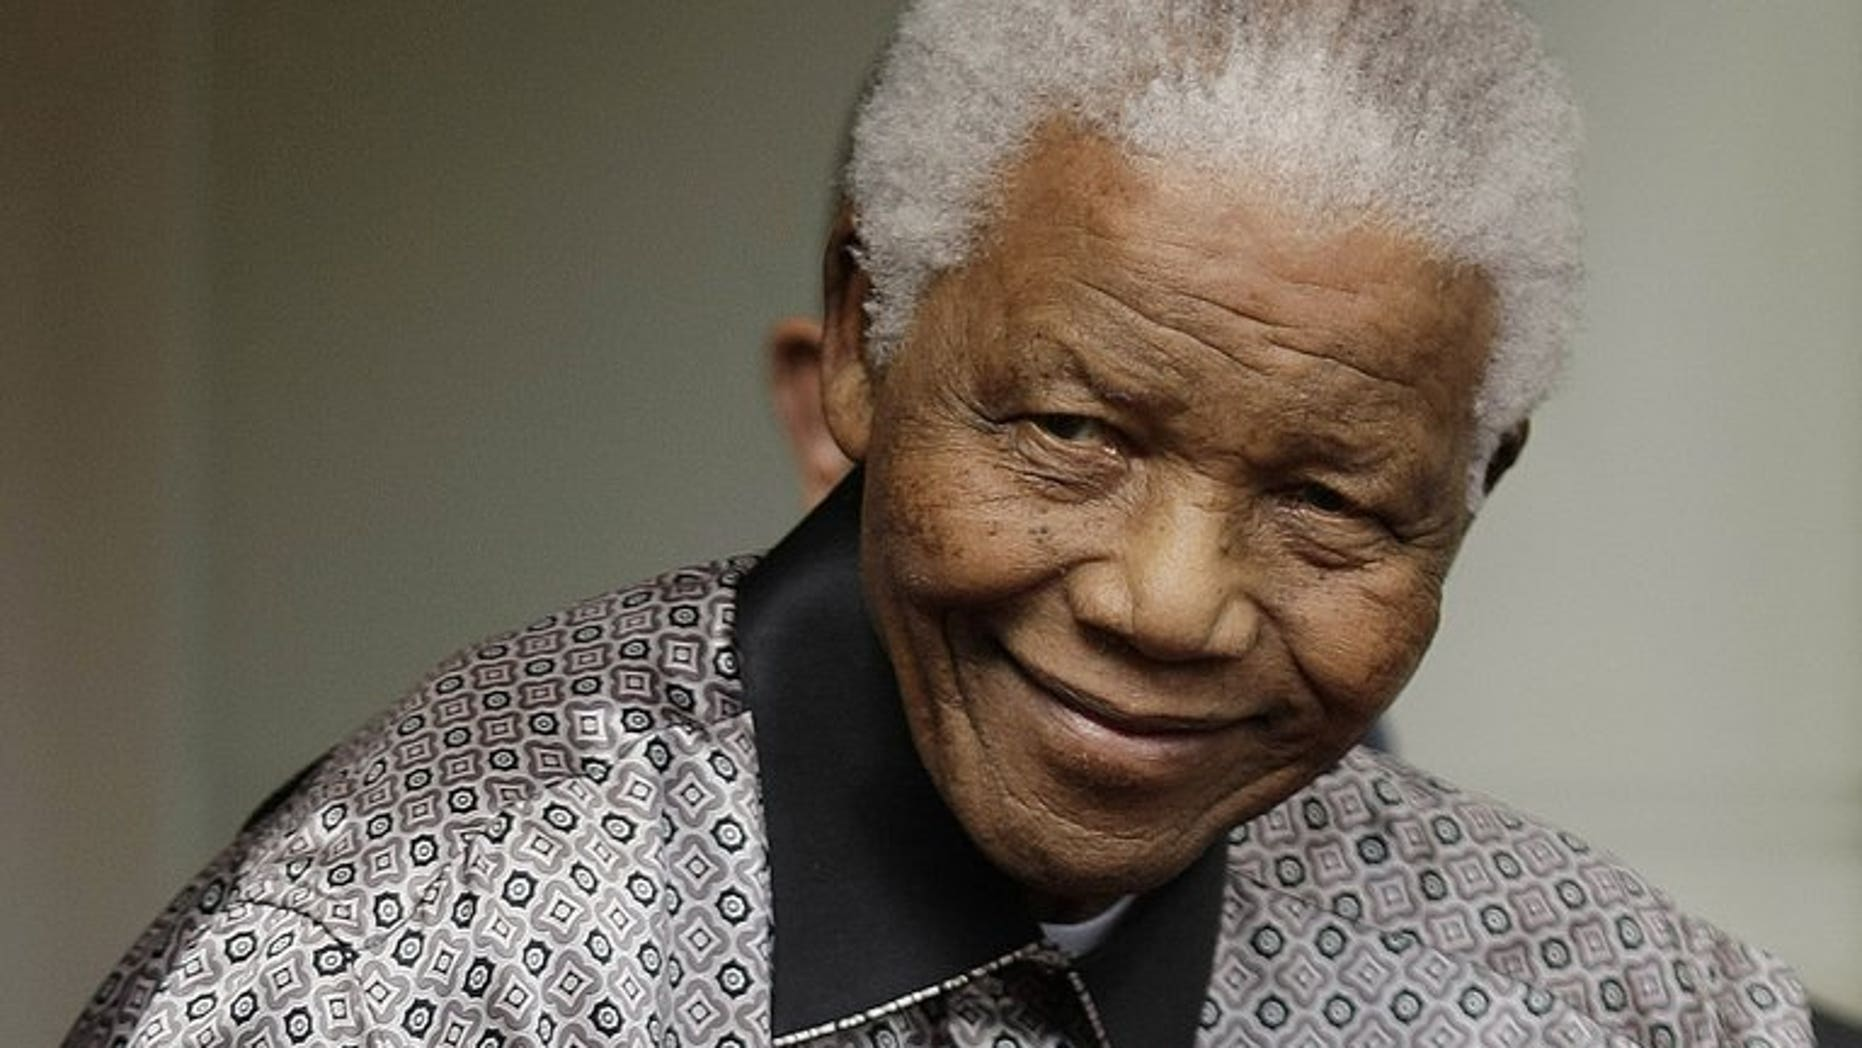 """Former South African president Nelson Mandela pictured in London on June 26, 2008. Mandela remains in a critical condition in hospital in Pretoria, granddaughter Ndileka Mandela told AFP Tuesday, adding that the anti-apartheid icon was """"stable""""."""